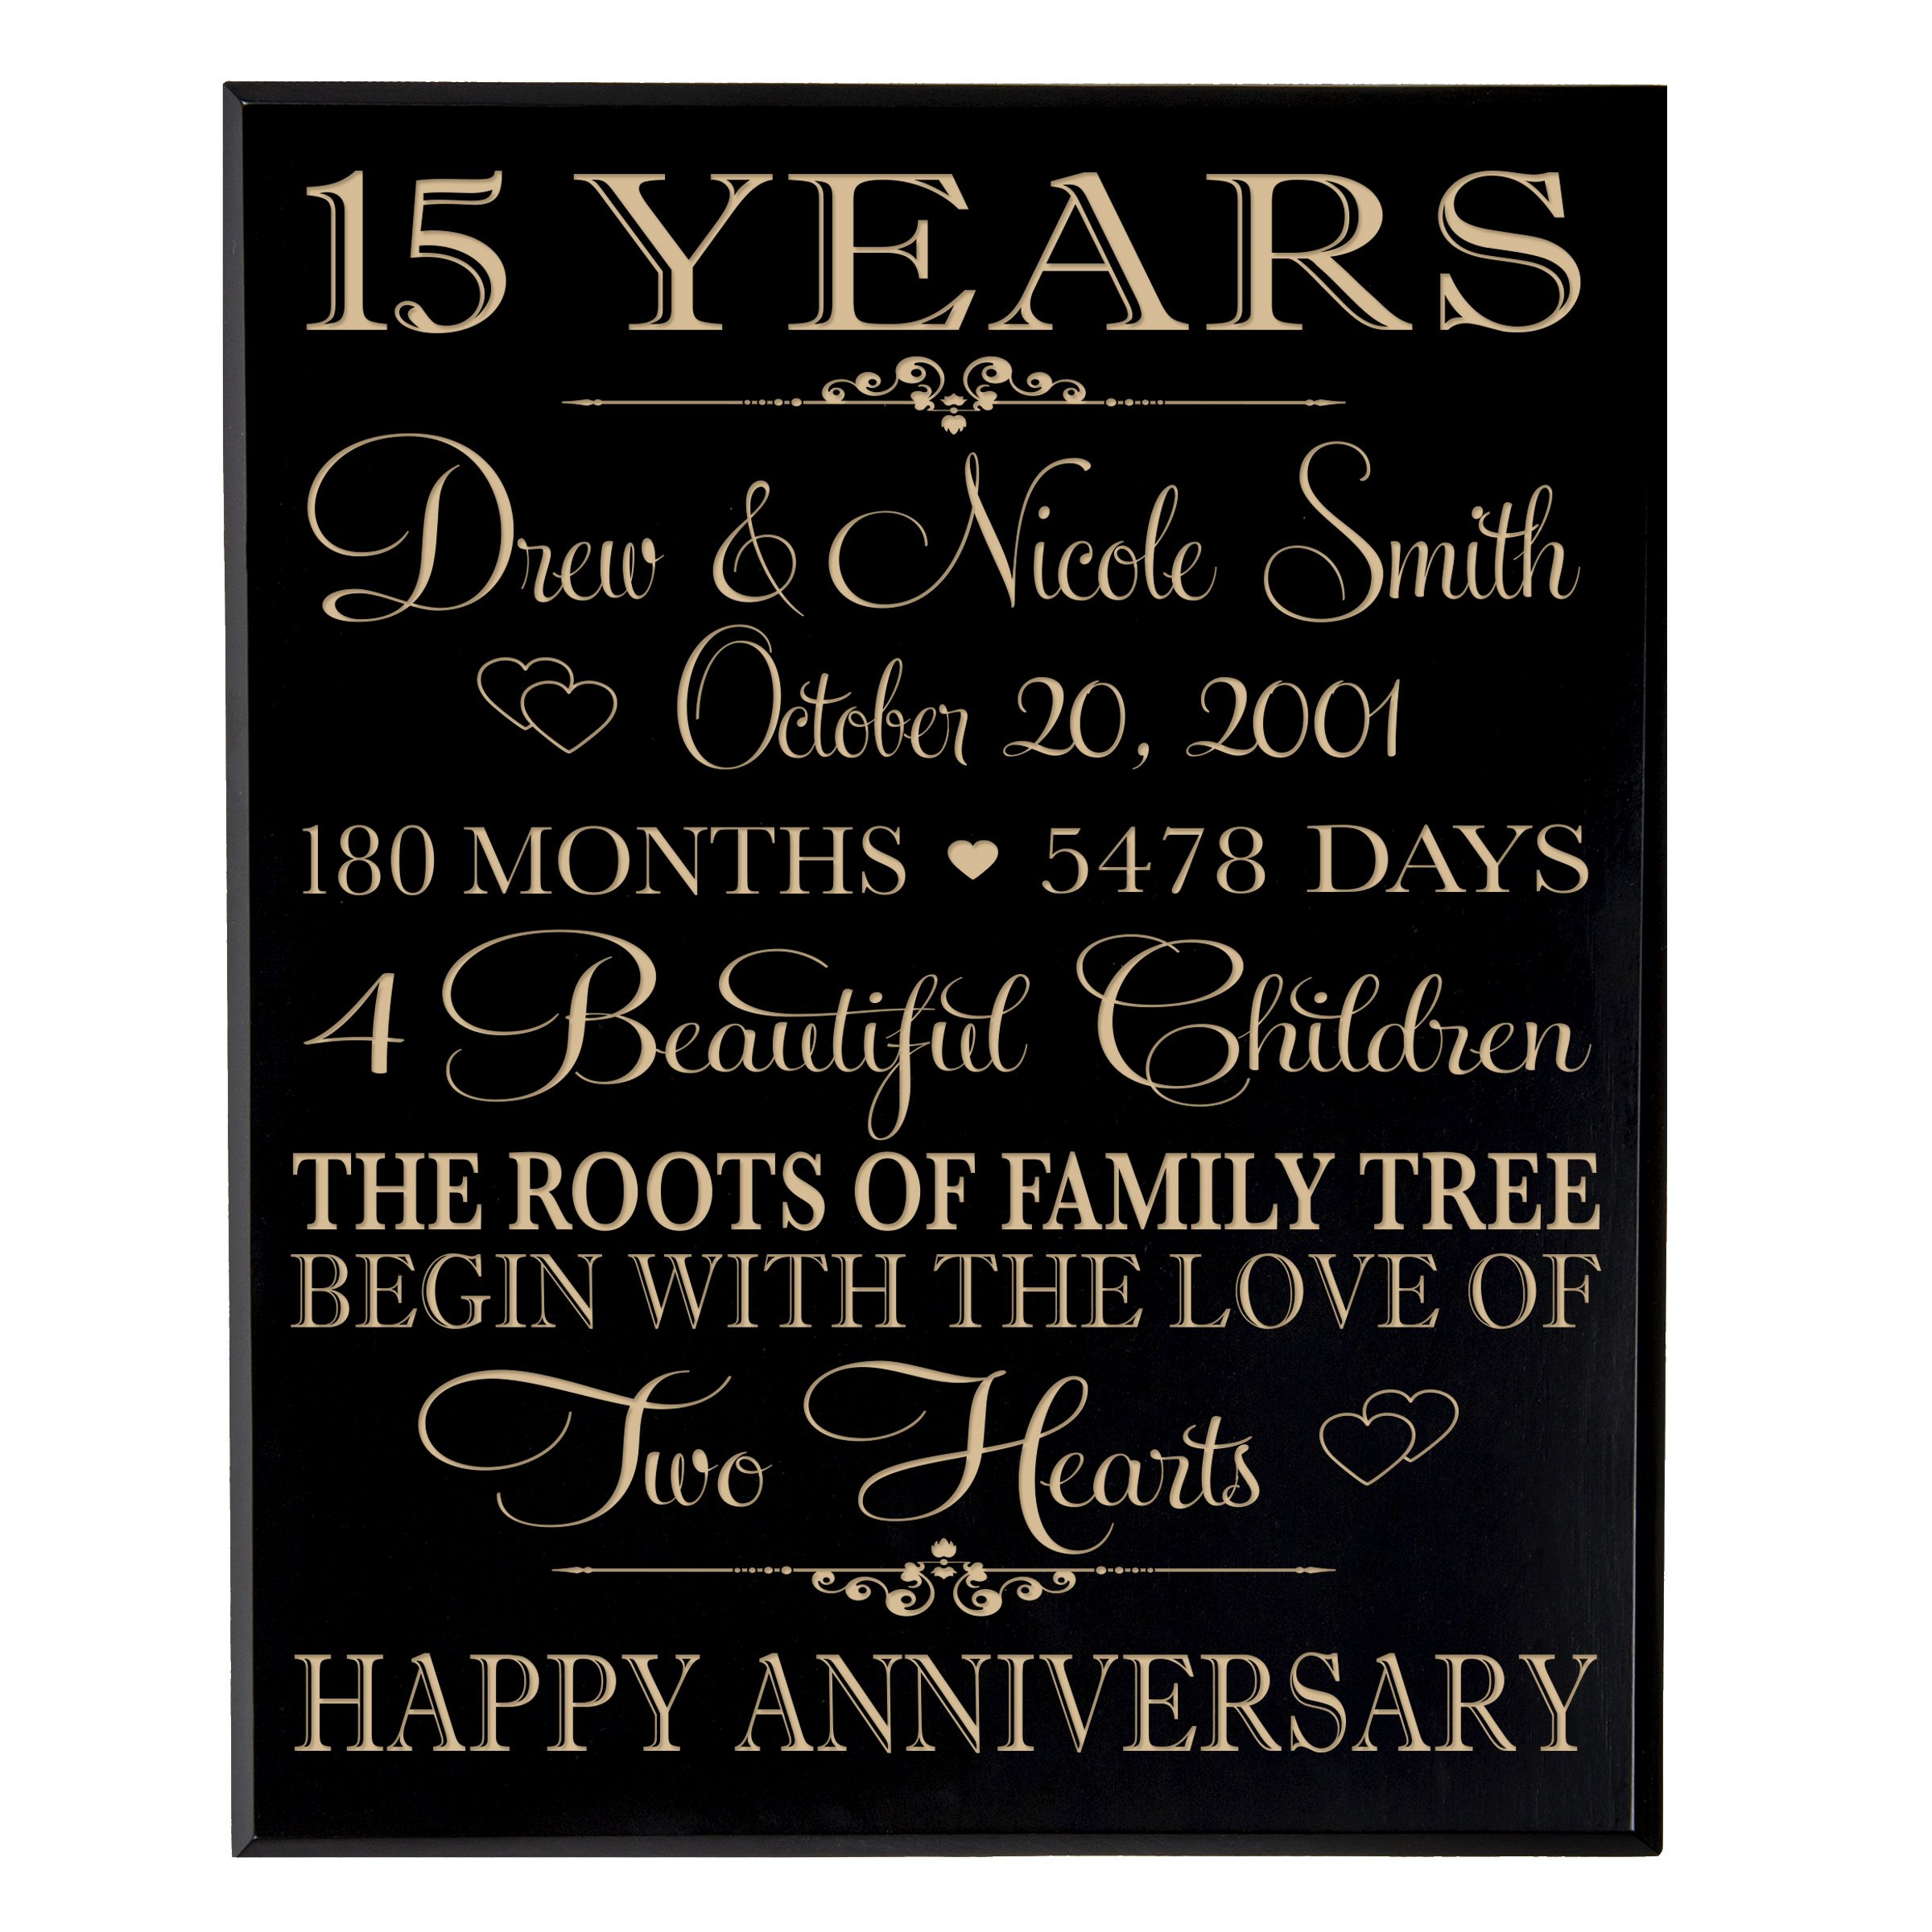 LifeSong Milestones Personalized 15 Year for Couple, 15th Wedding Gift Ideas for Her and him,Custom Engraved Established Family Dates Sign (Black Maple Veneer Wood)